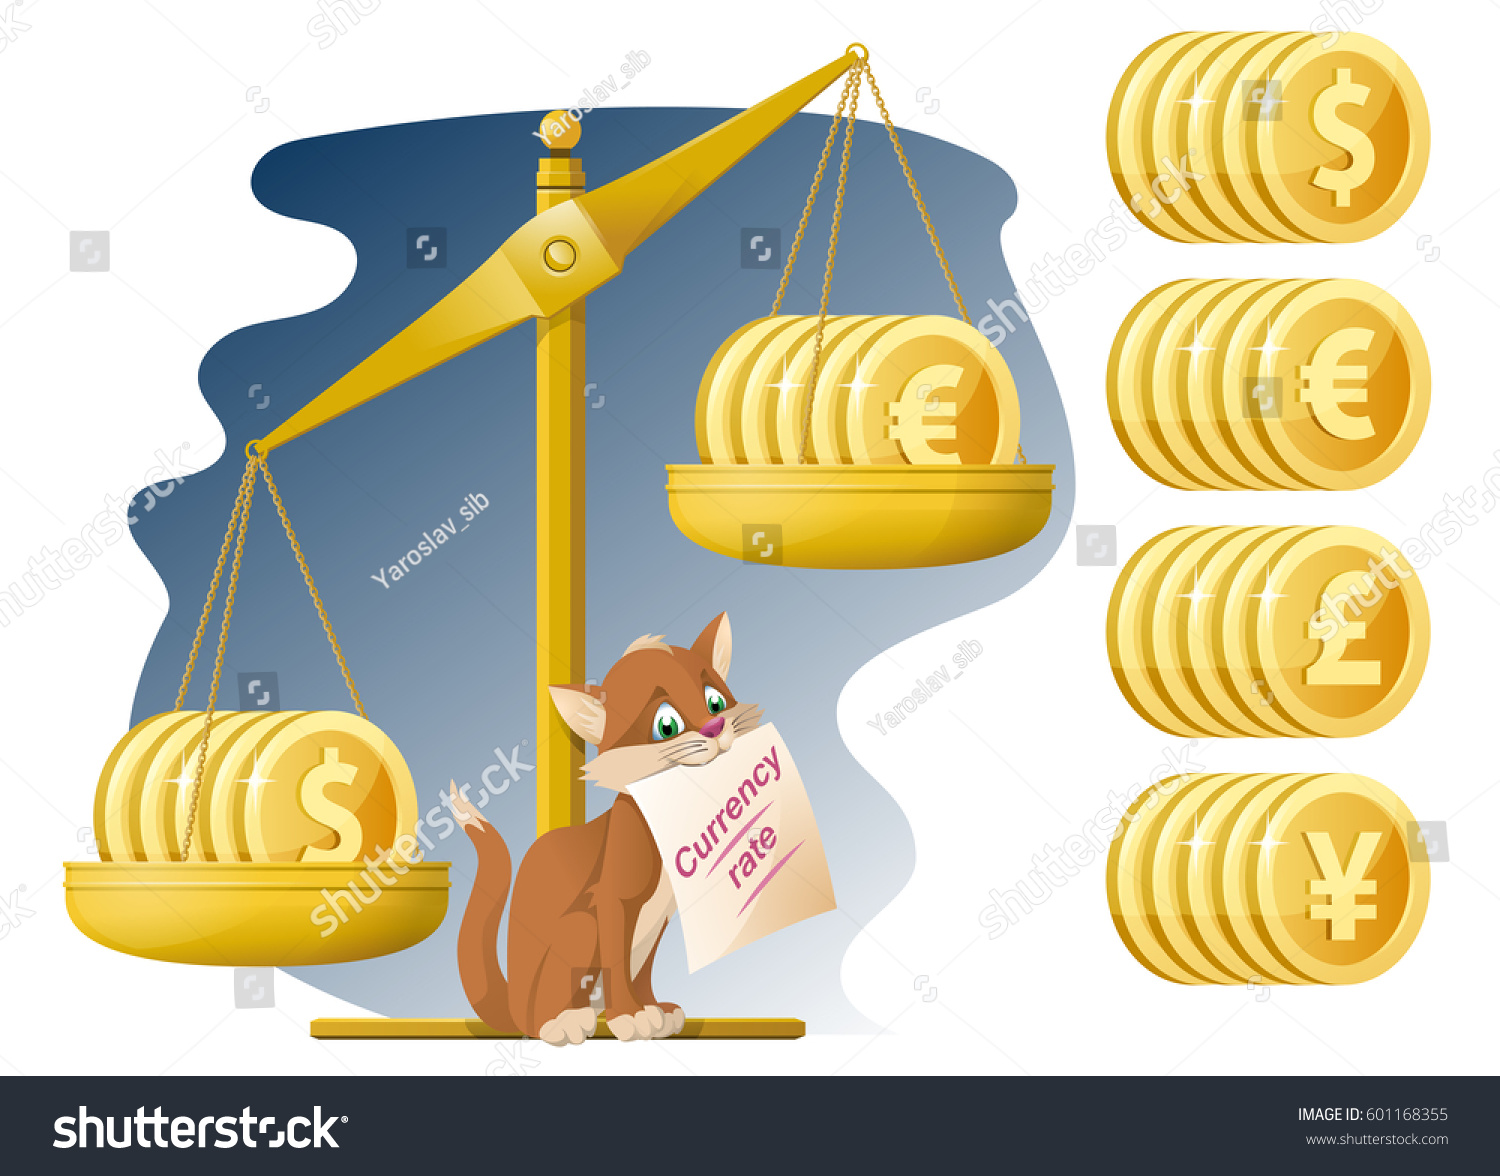 Libra A Euro Libra Funny Cat Currency Rate Dollar Stock Vector Royalty Free